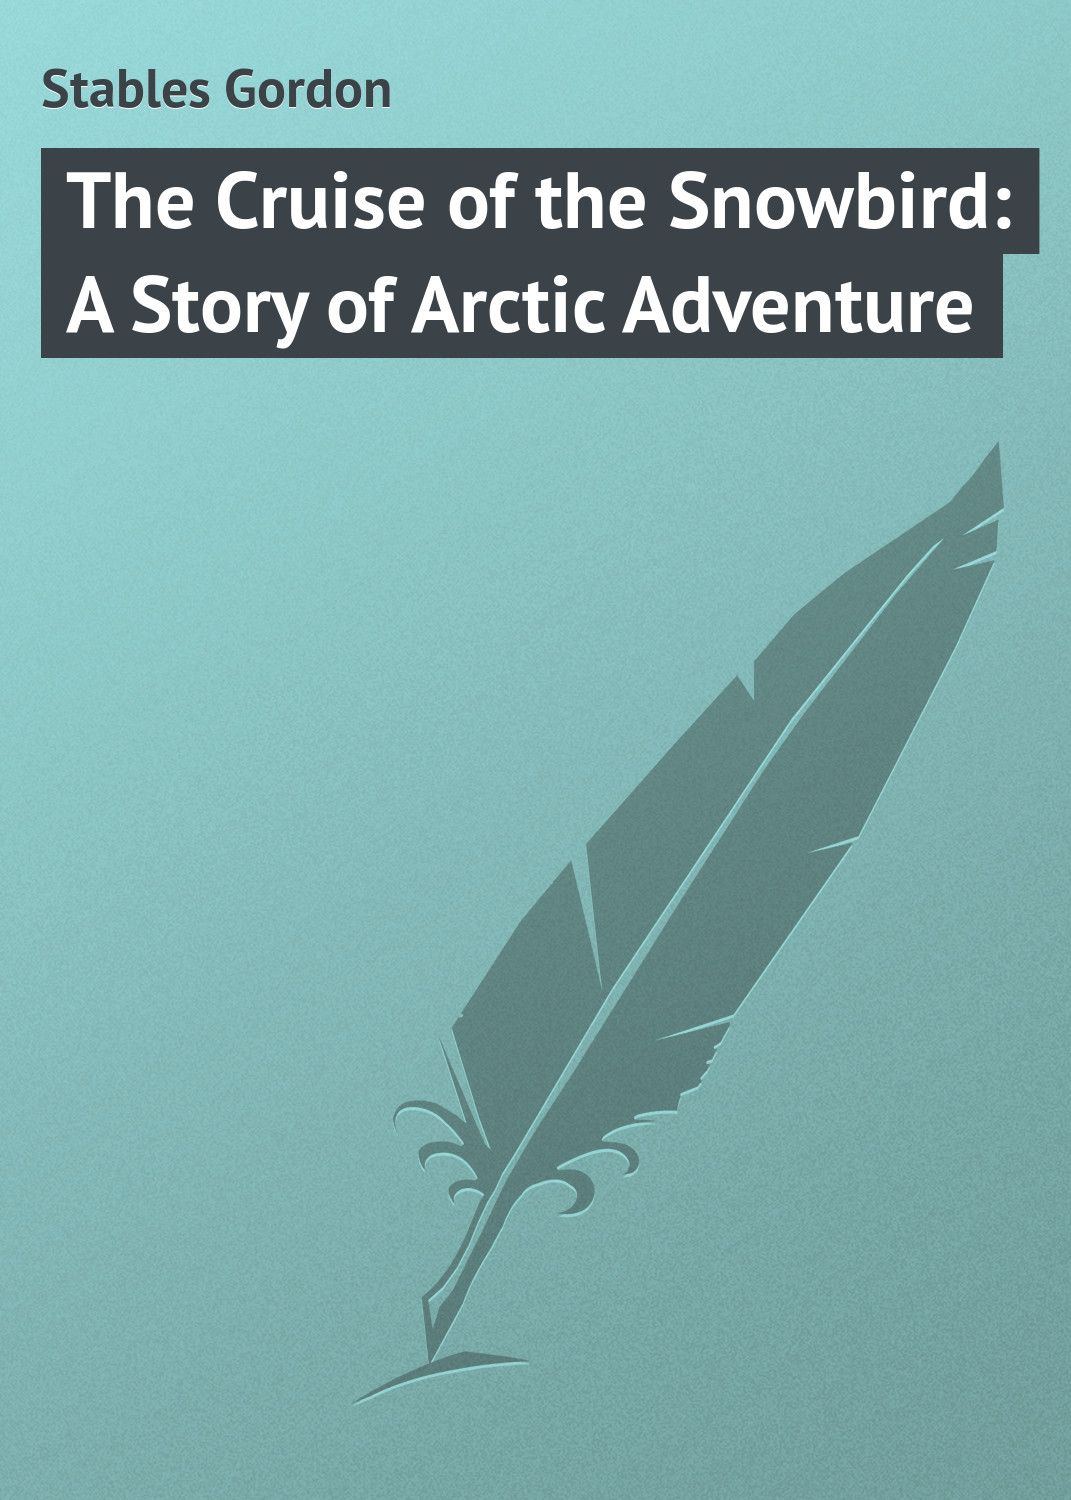 Stables Gordon The Cruise of the Snowbird: A Story of Arctic Adventure goodwin harold leland the flying stingaree a rick brant science adventure story